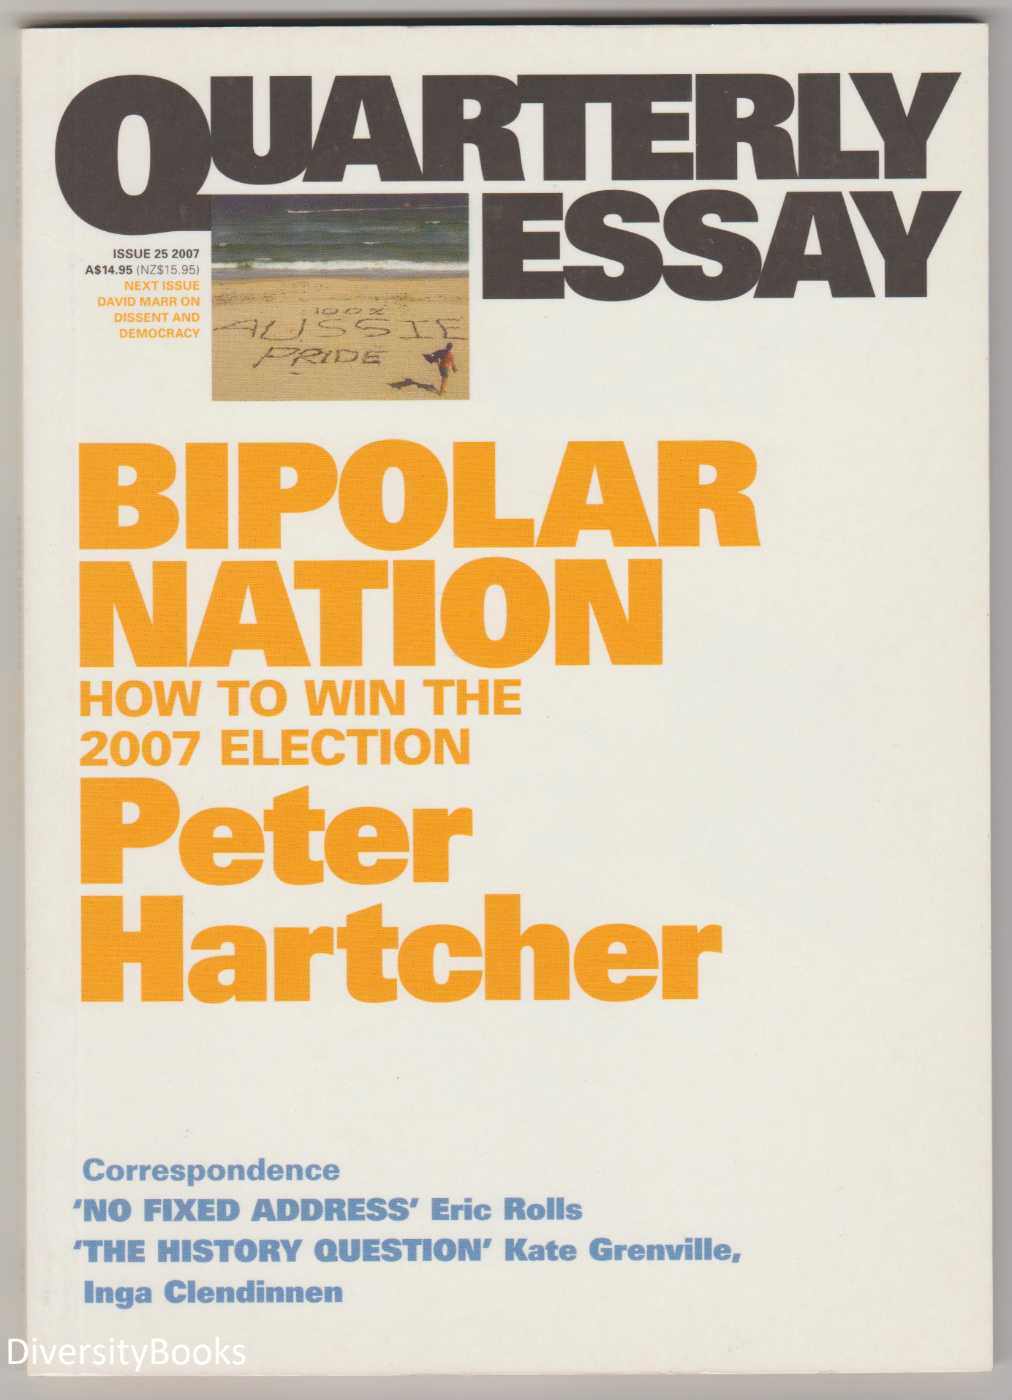 Image for BIPOLAR NATION: How to Win The 2007 Election (Quarterly Essay, Issue 25)